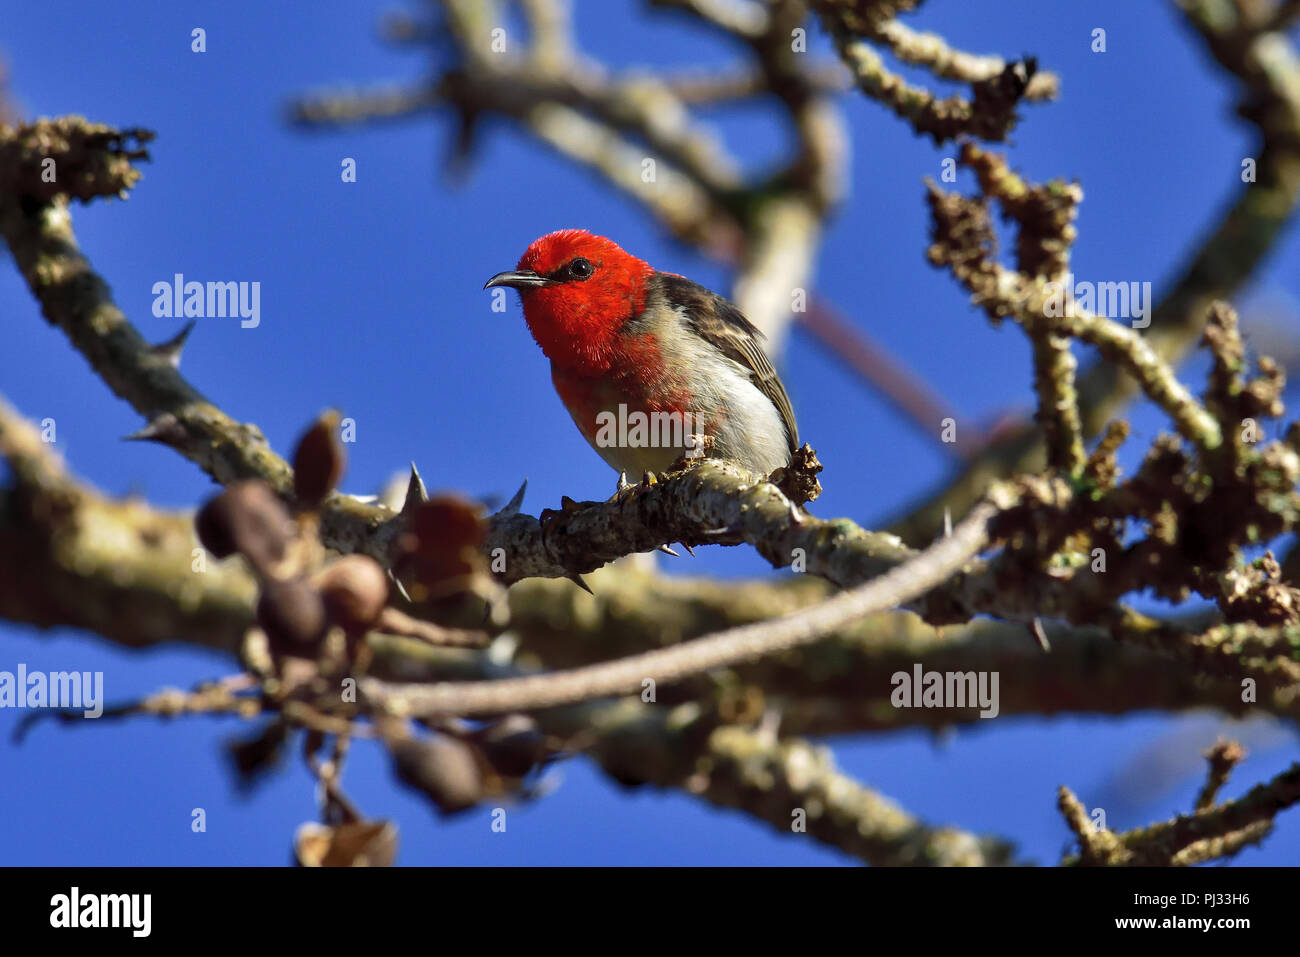 An Australian, Queensland Male Scarlet Honeyeater ( Myzomela sanguinolenta ) perched on a tree branch looking to Camera - Stock Image